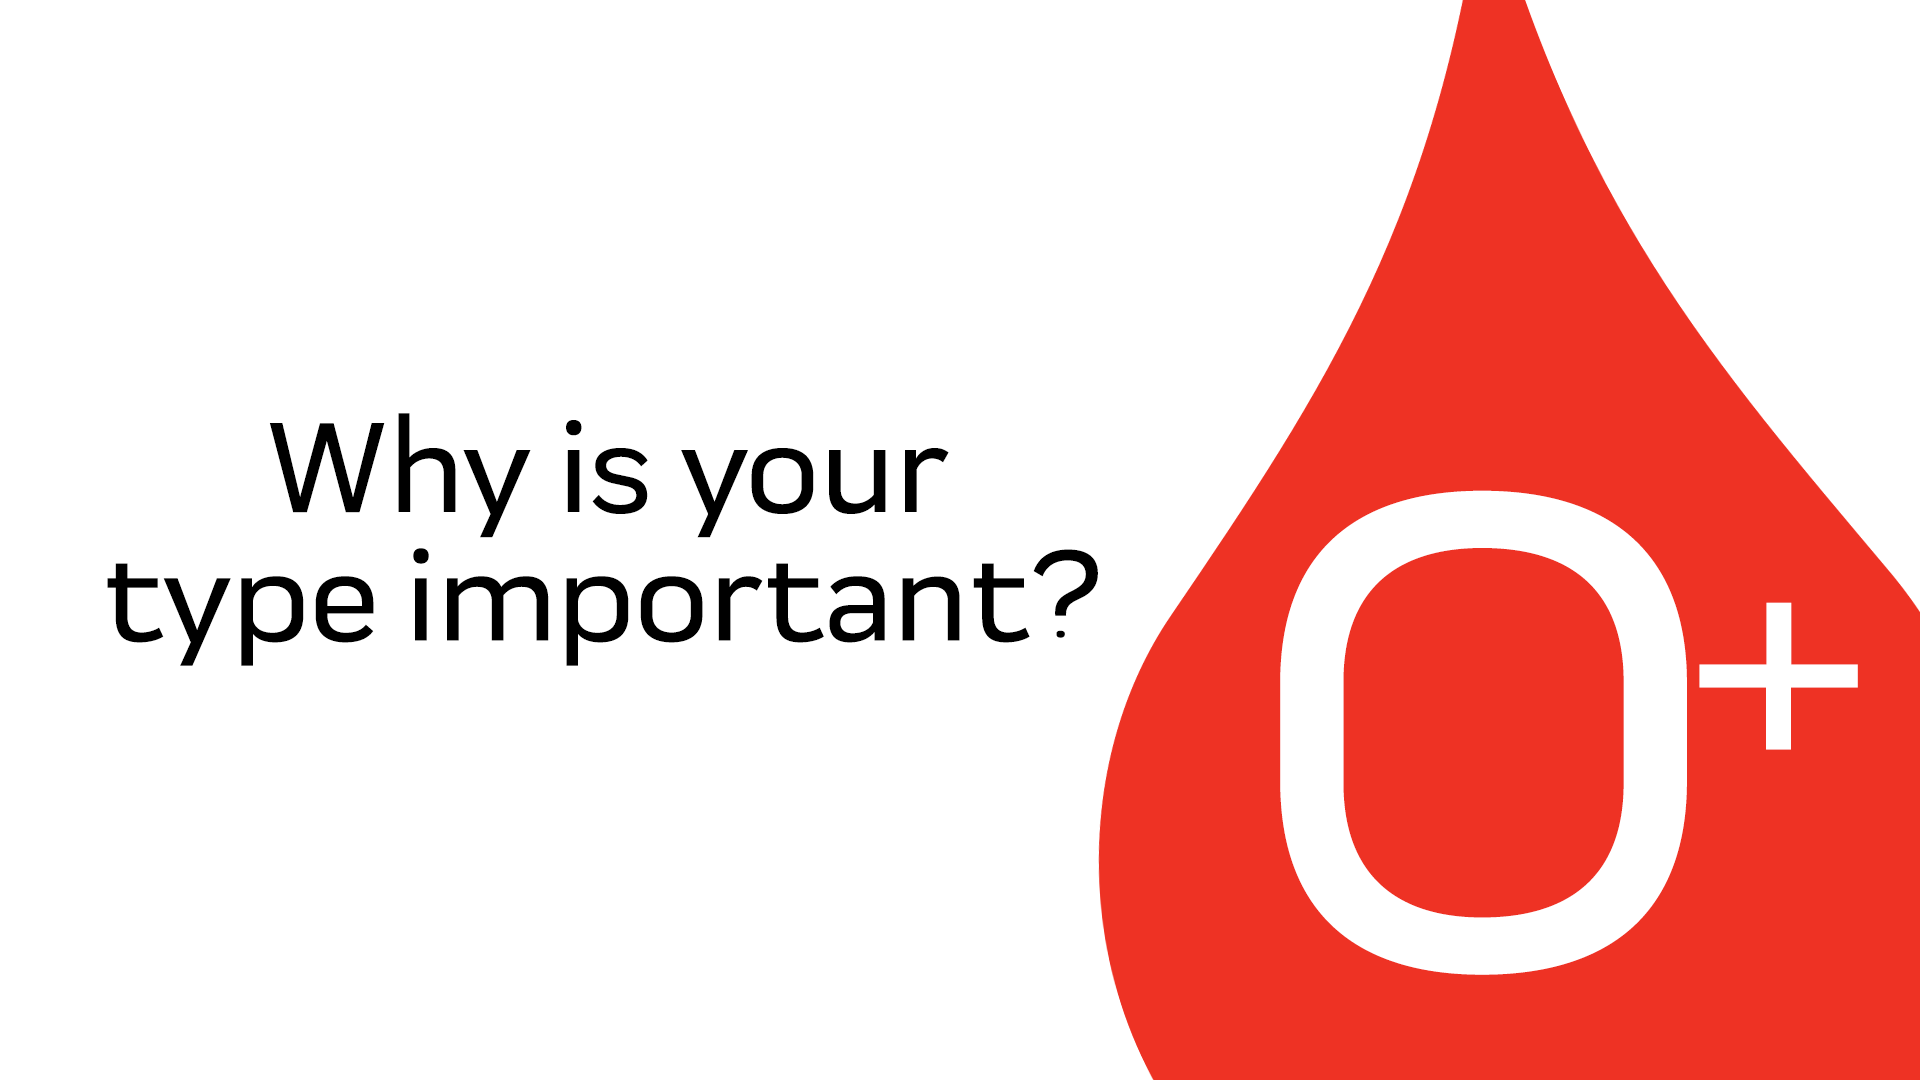 Your O+ Blood Is Important